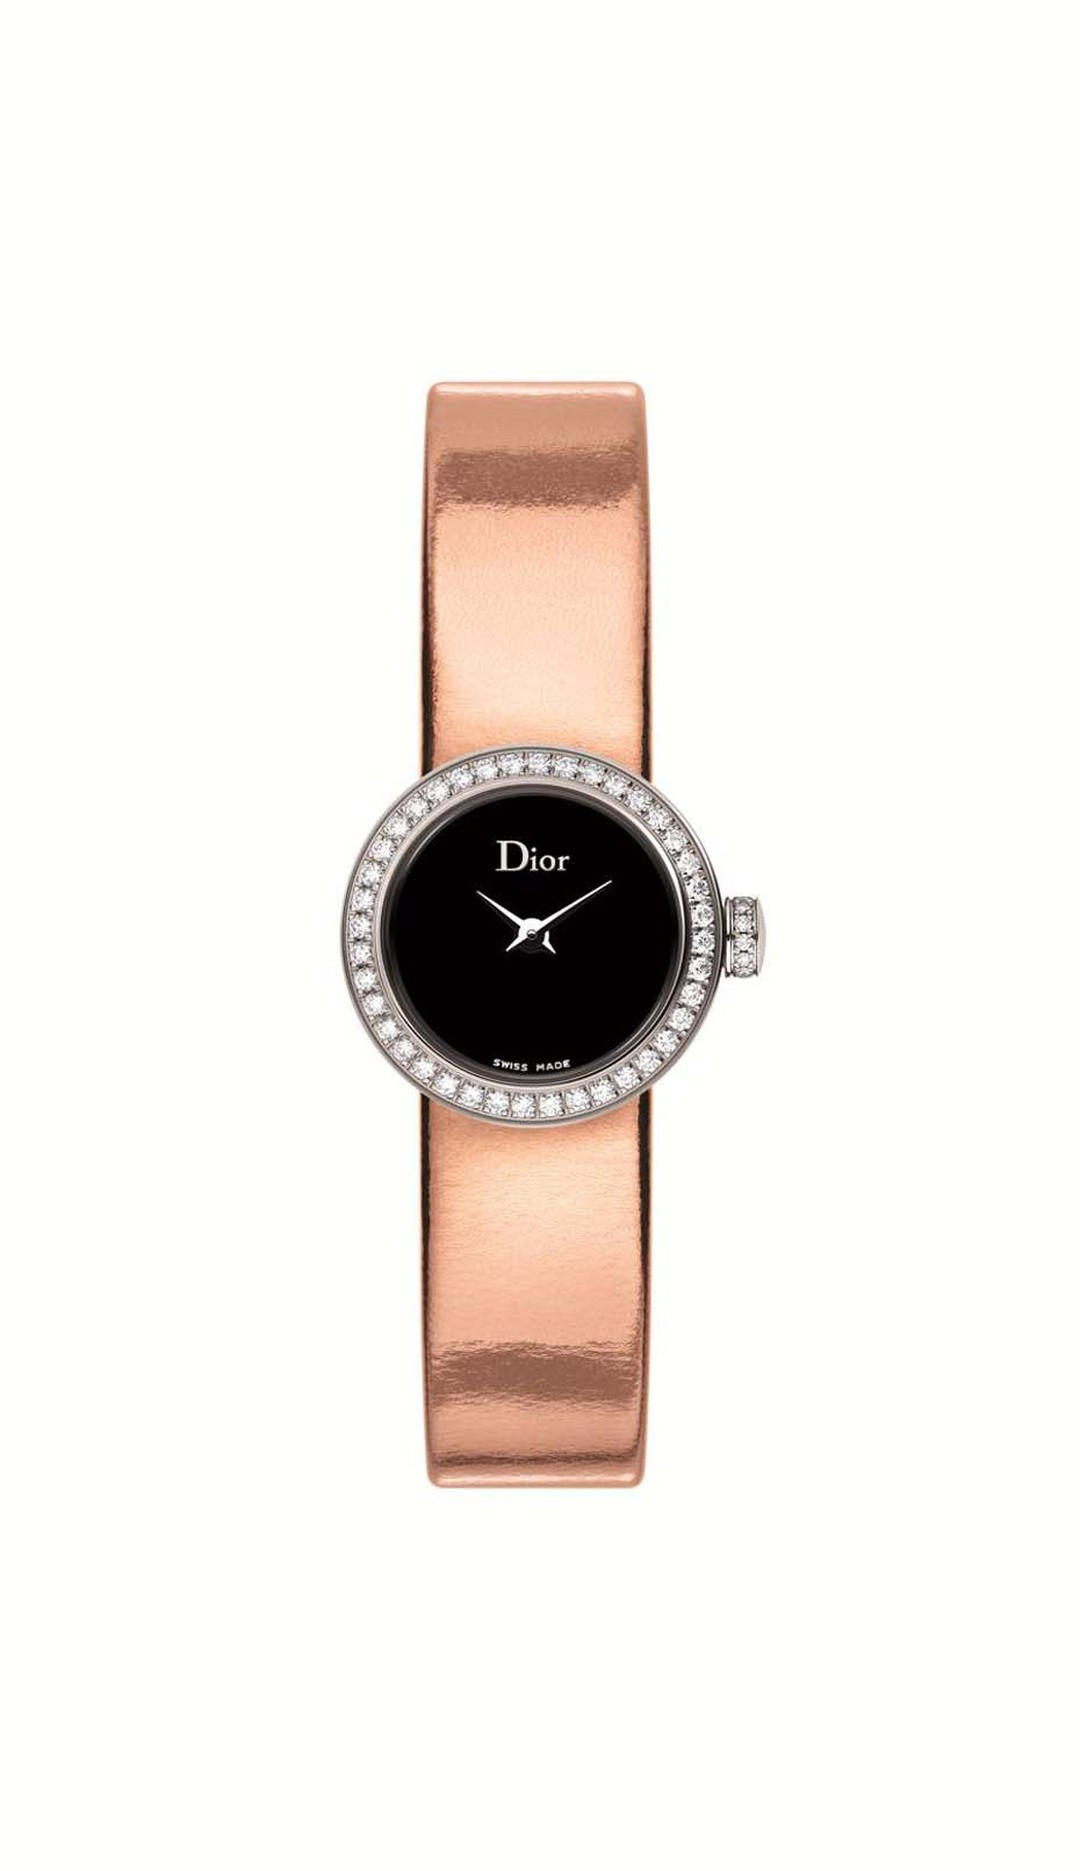 This La Mini D de Dior watch measures just 19mm across. With an inky black mother-of-pearl dial set alight with diamonds on the bezel and crown, a sumptuous metallic leather strap adds the finishing touch (£2,900).